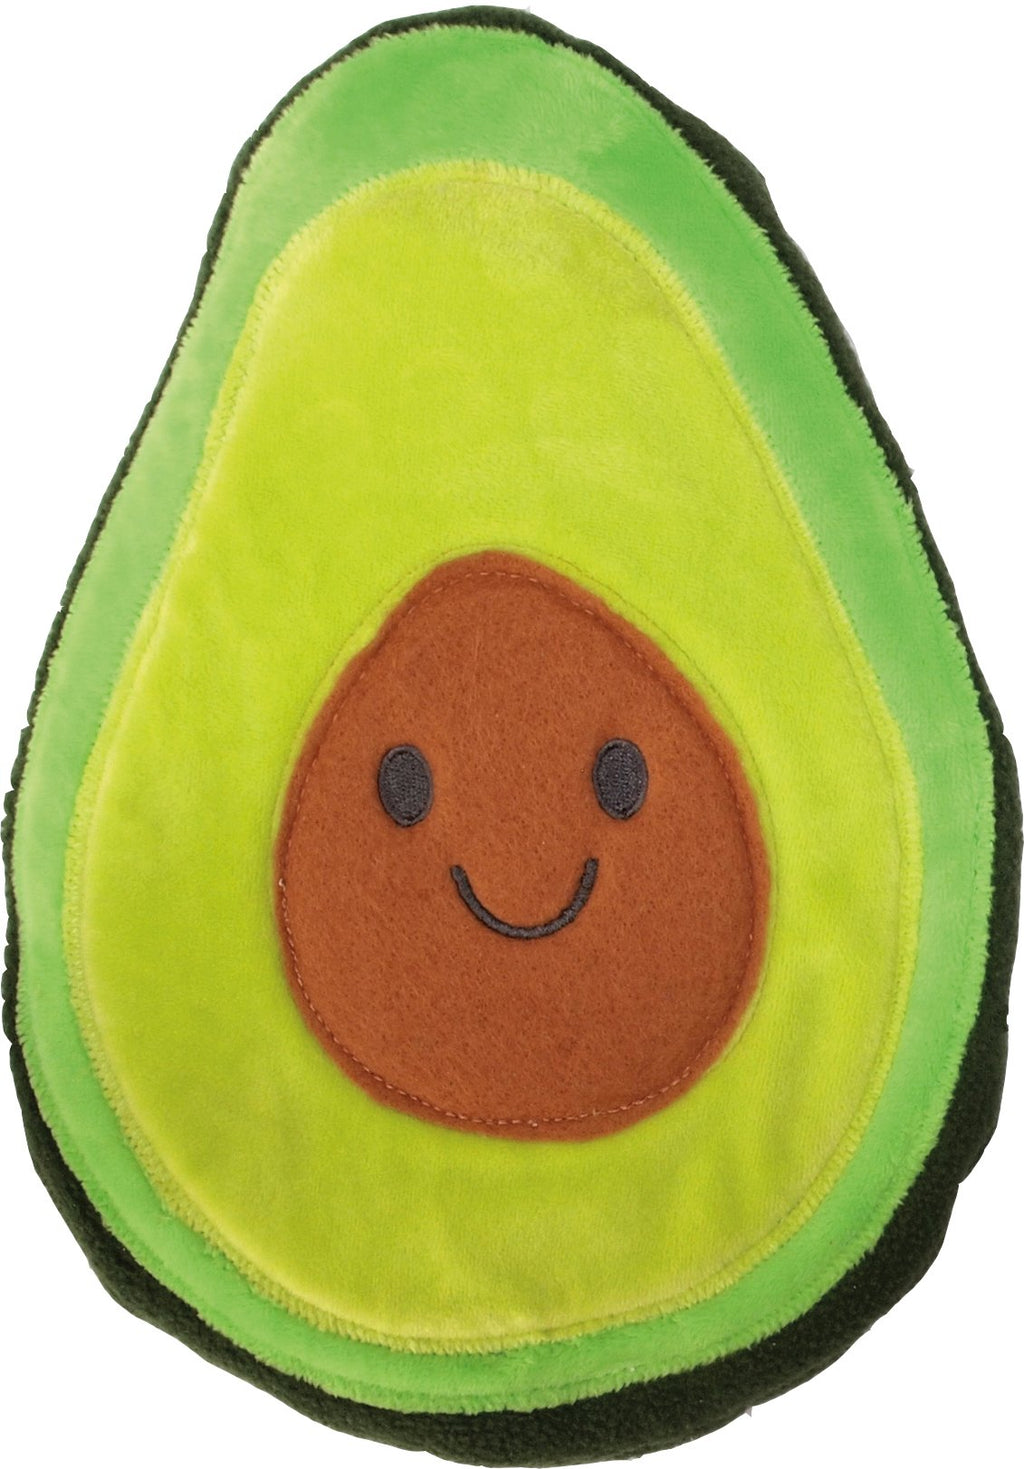 Avocado Heatable Pillow